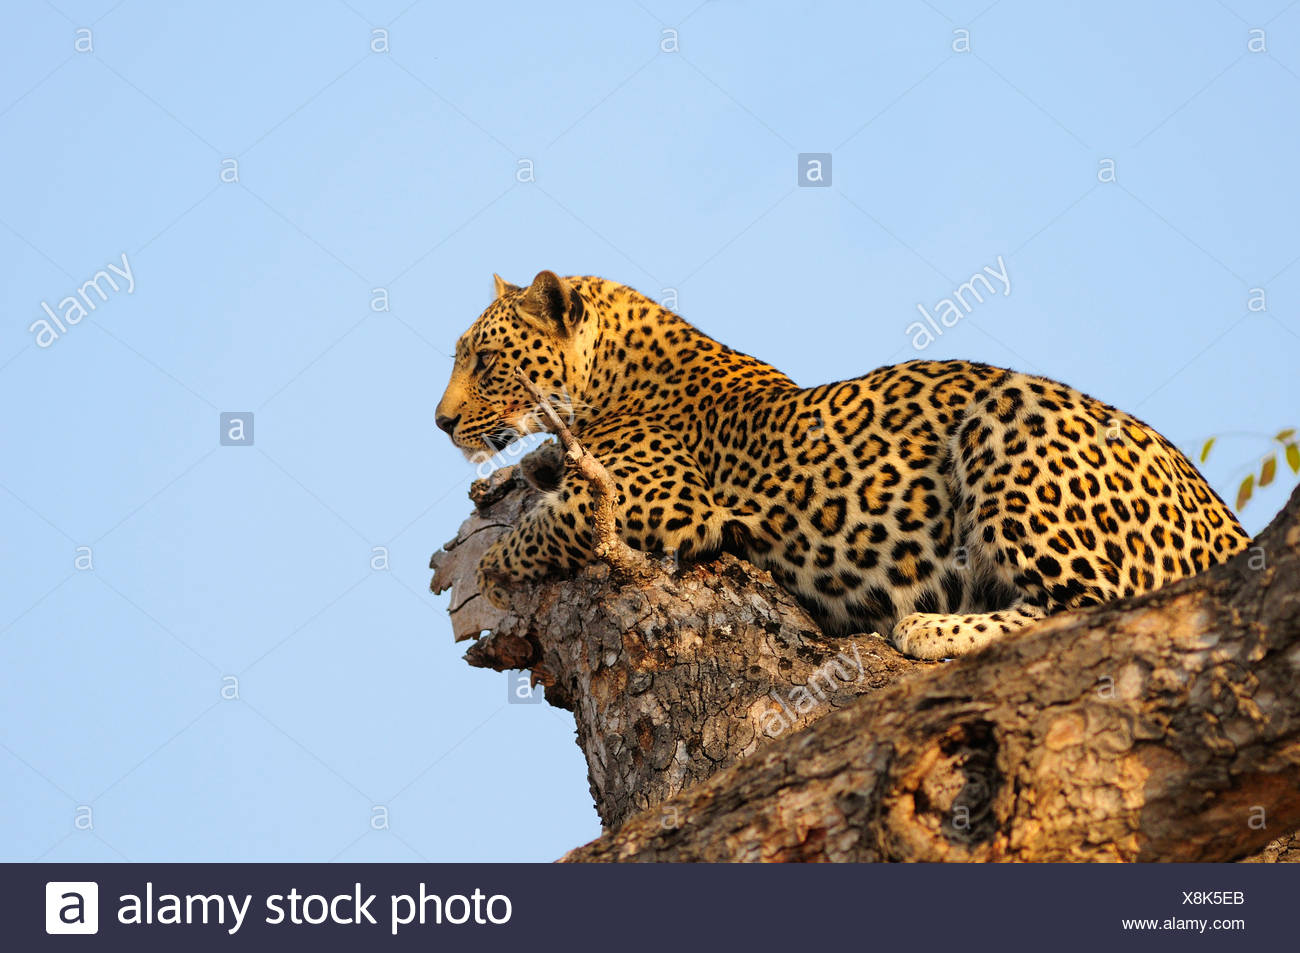 Leopard Panthera pardus Ulusaba Sir Richard Branson's Private Game Reserve Sabi Sands Game Reserve Mpumalanga South Africa tree - Stock Image